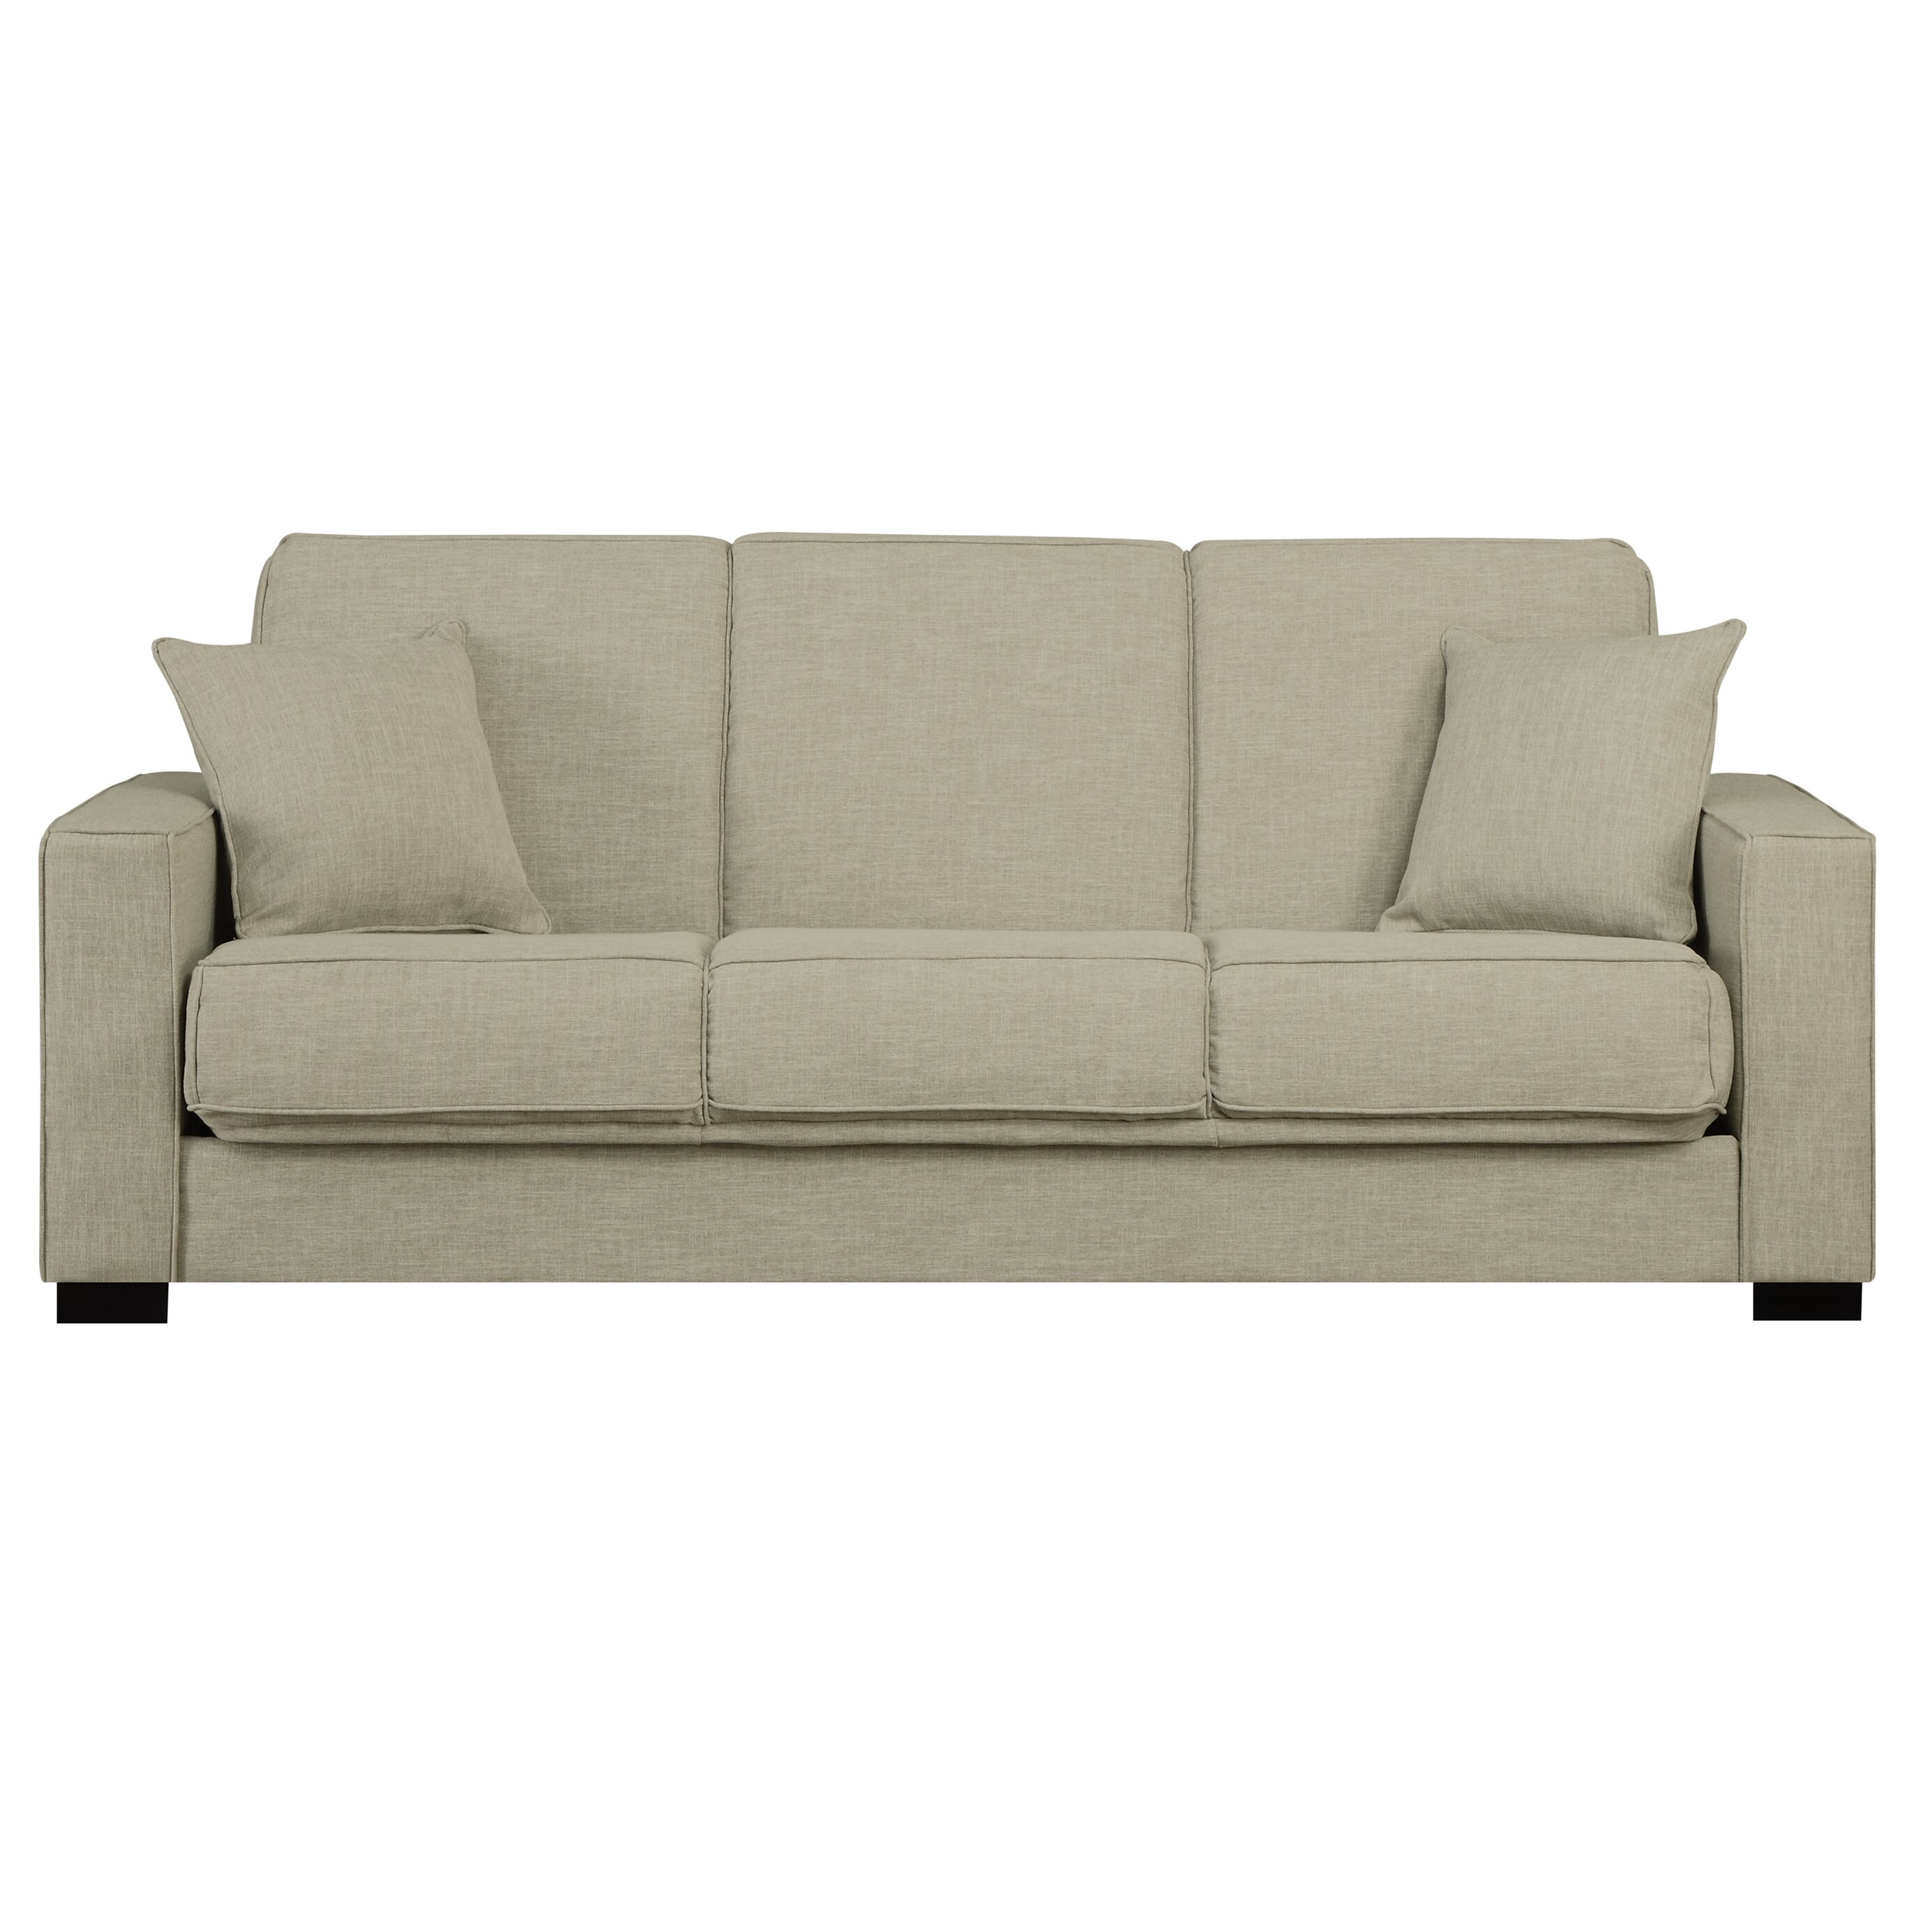 Zipcode Design Kaylee Full Convertible Sleeper Sofa